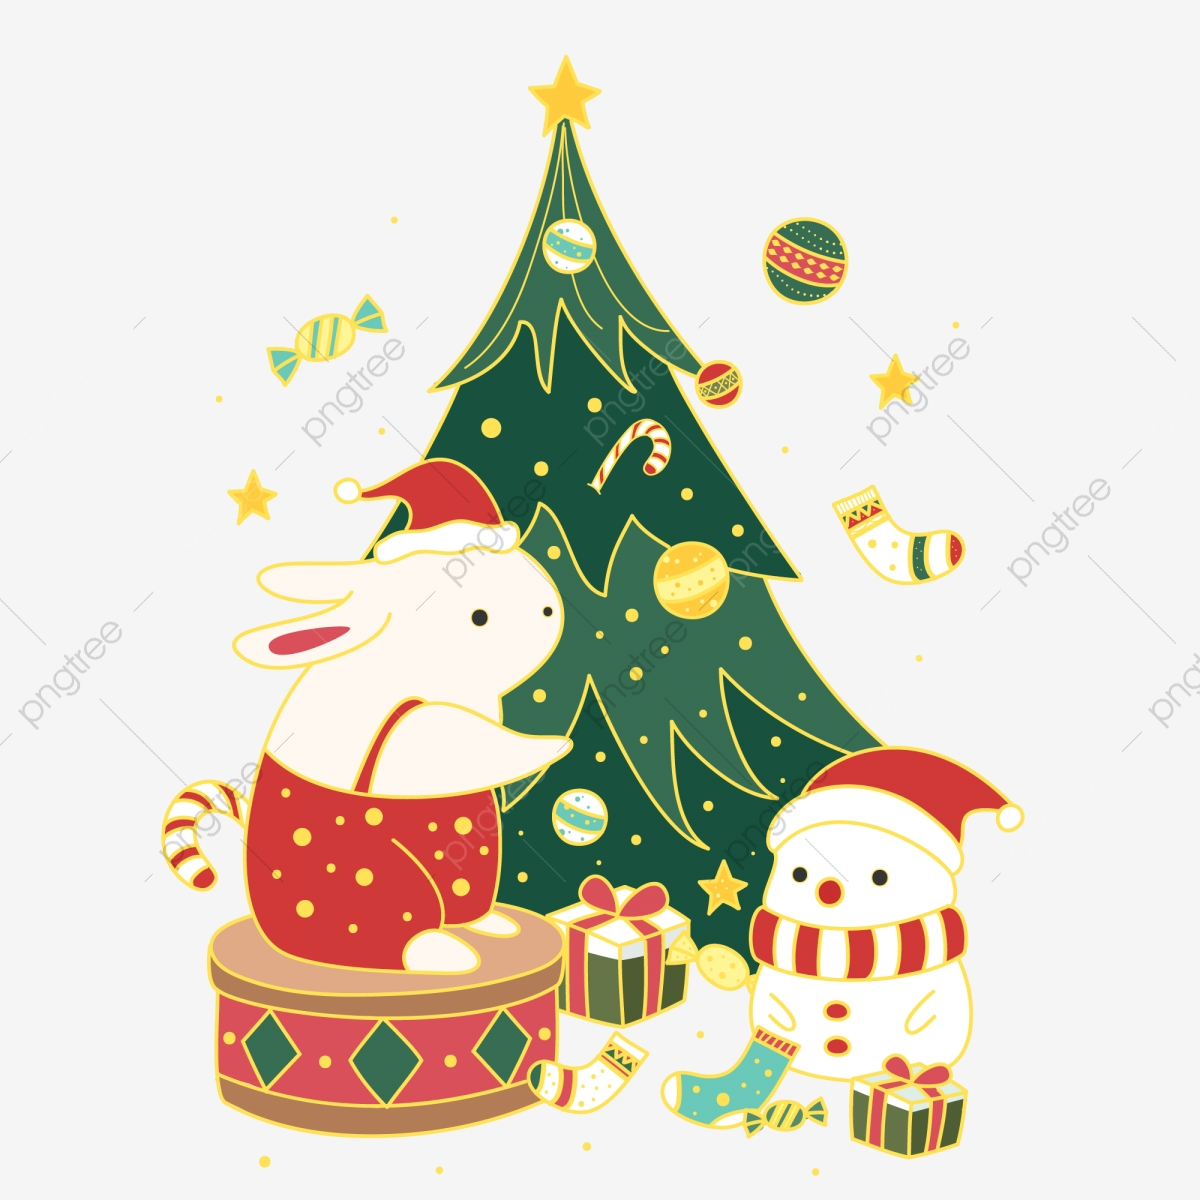 Hand Drawn Cartoon Christmas Tree Element Christmas Tree Christmas Cartoon Png And Vector With Transparent Background For Free Download With tenor, maker of gif keyboard, add popular xmas tree cartoon animated gifs to your conversations. https pngtree com freepng hand drawn cartoon christmas tree element 4025415 html